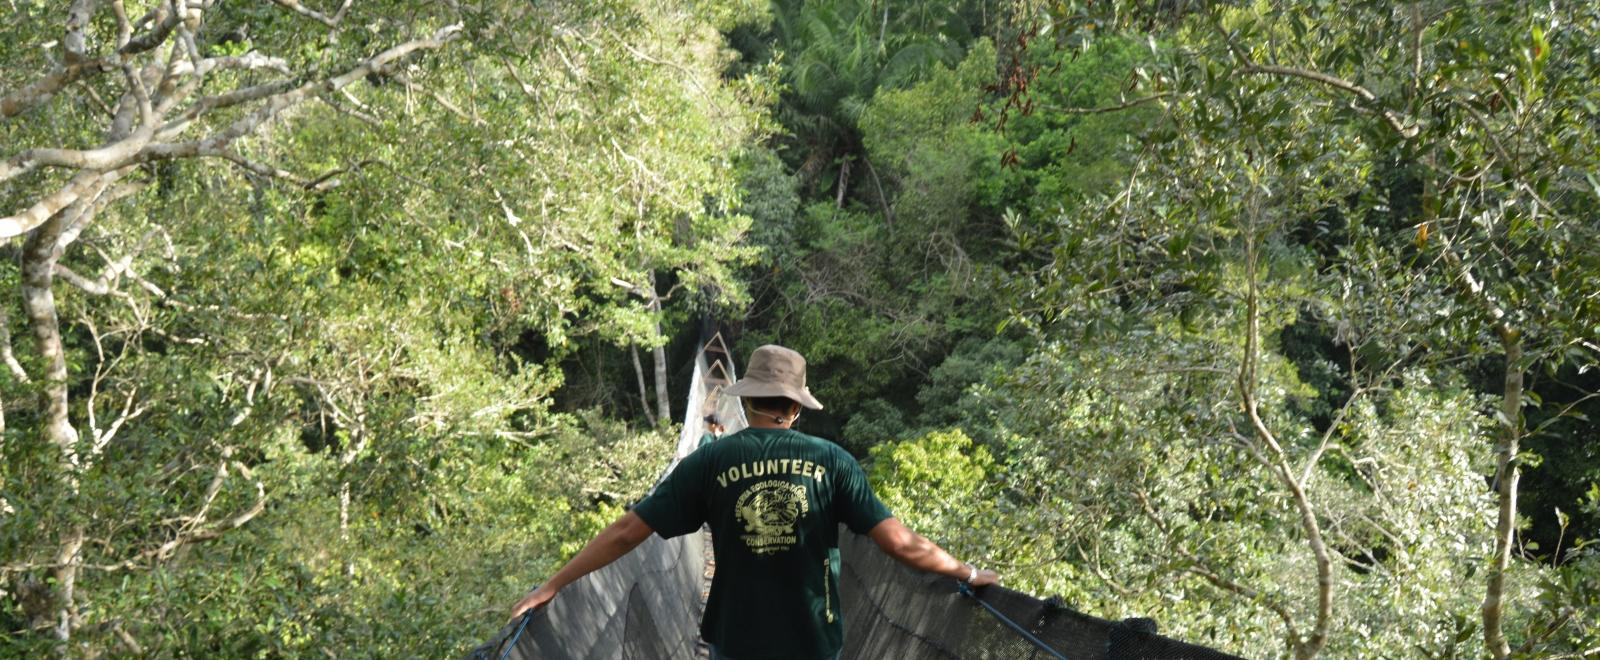 Projects Abroad volunteers scaling a canopy walkway during their Conservation volunteering in the Amazon Rainforest in Peru.